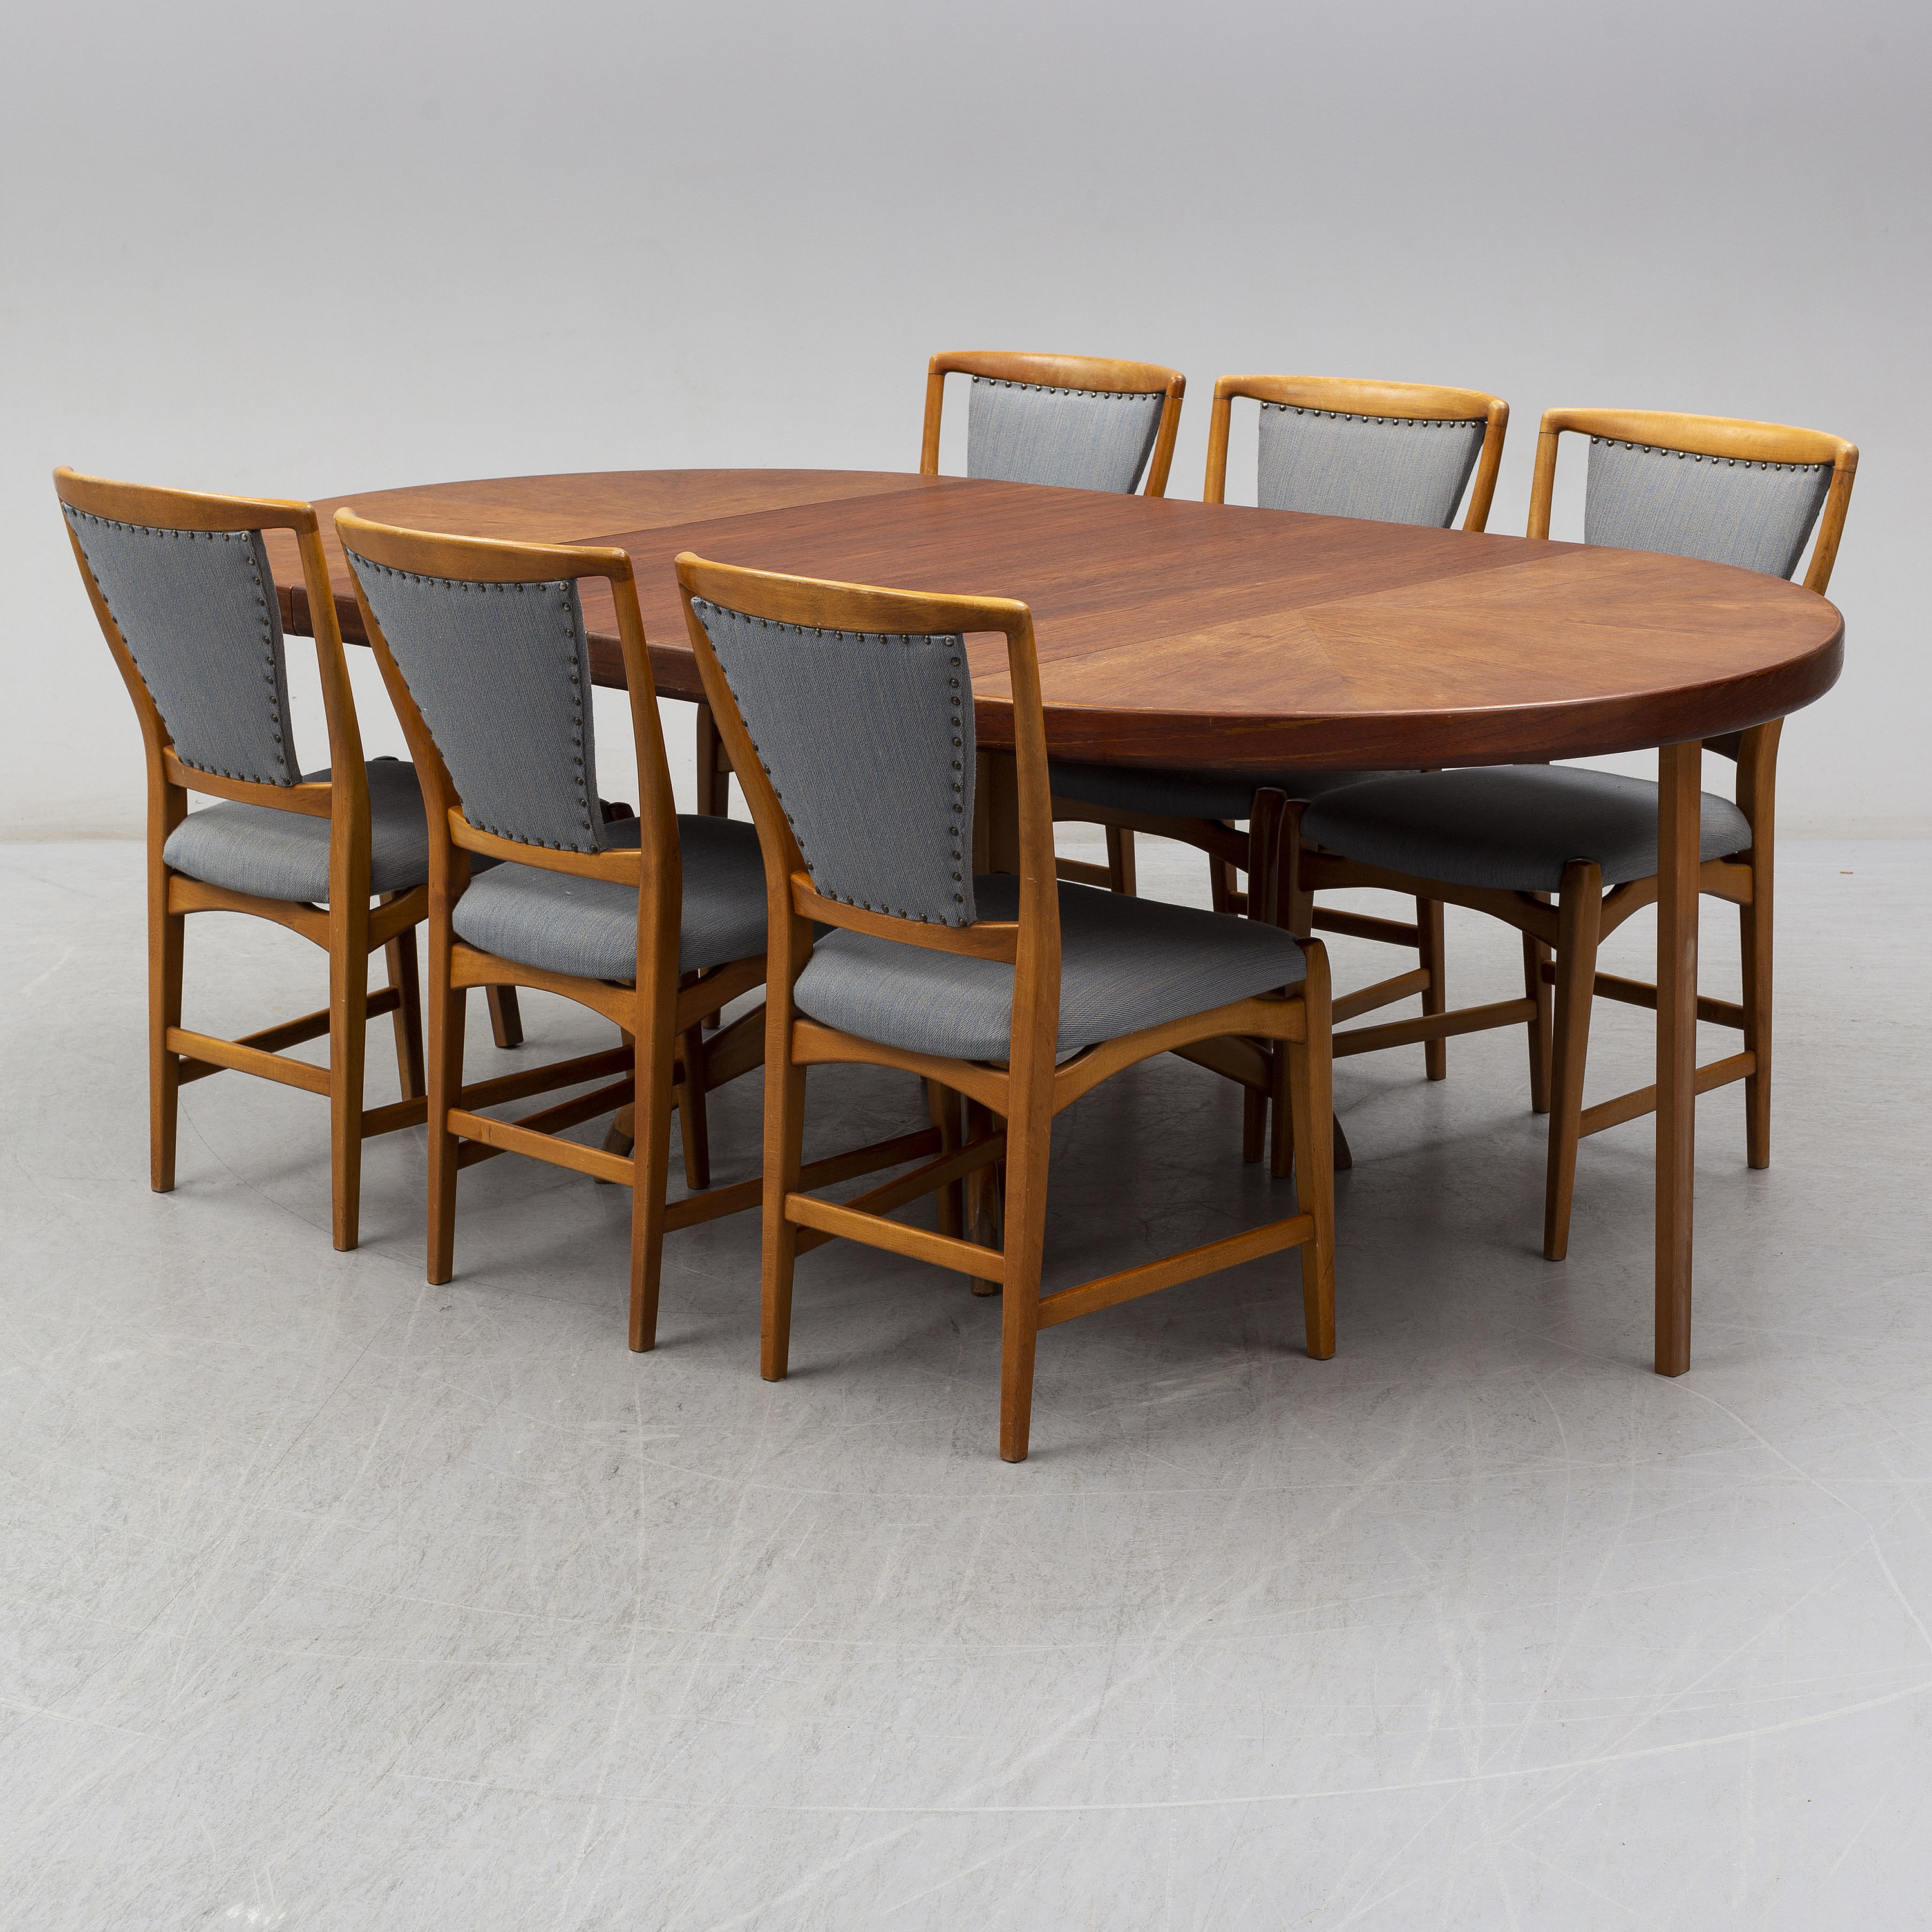 Tremendous A Teak And Beech Dining Table And 6 Chairs Mid 20Th Century Customarchery Wood Chair Design Ideas Customarcherynet